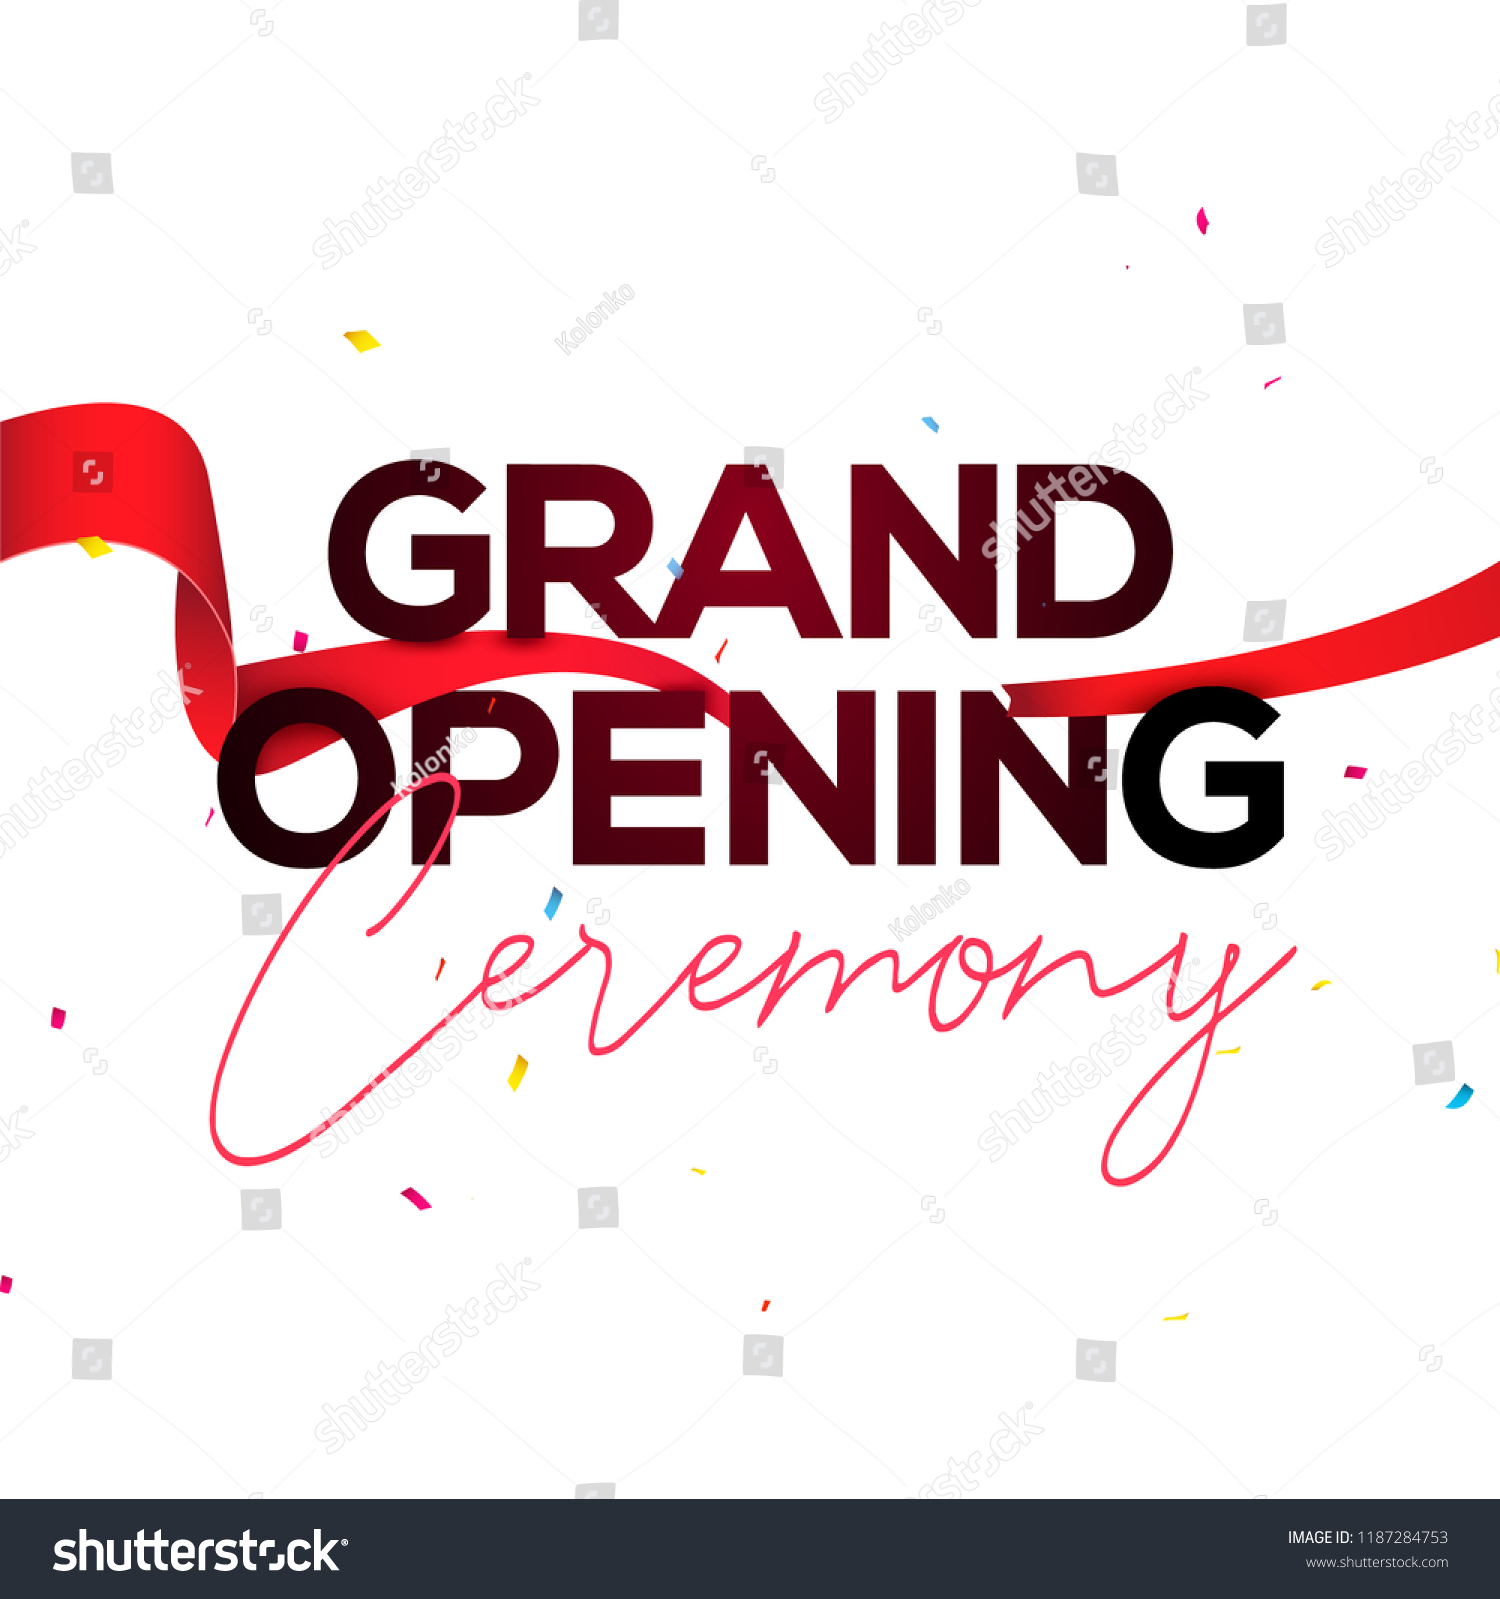 grand opening ceremony poster concept invitation stock vector